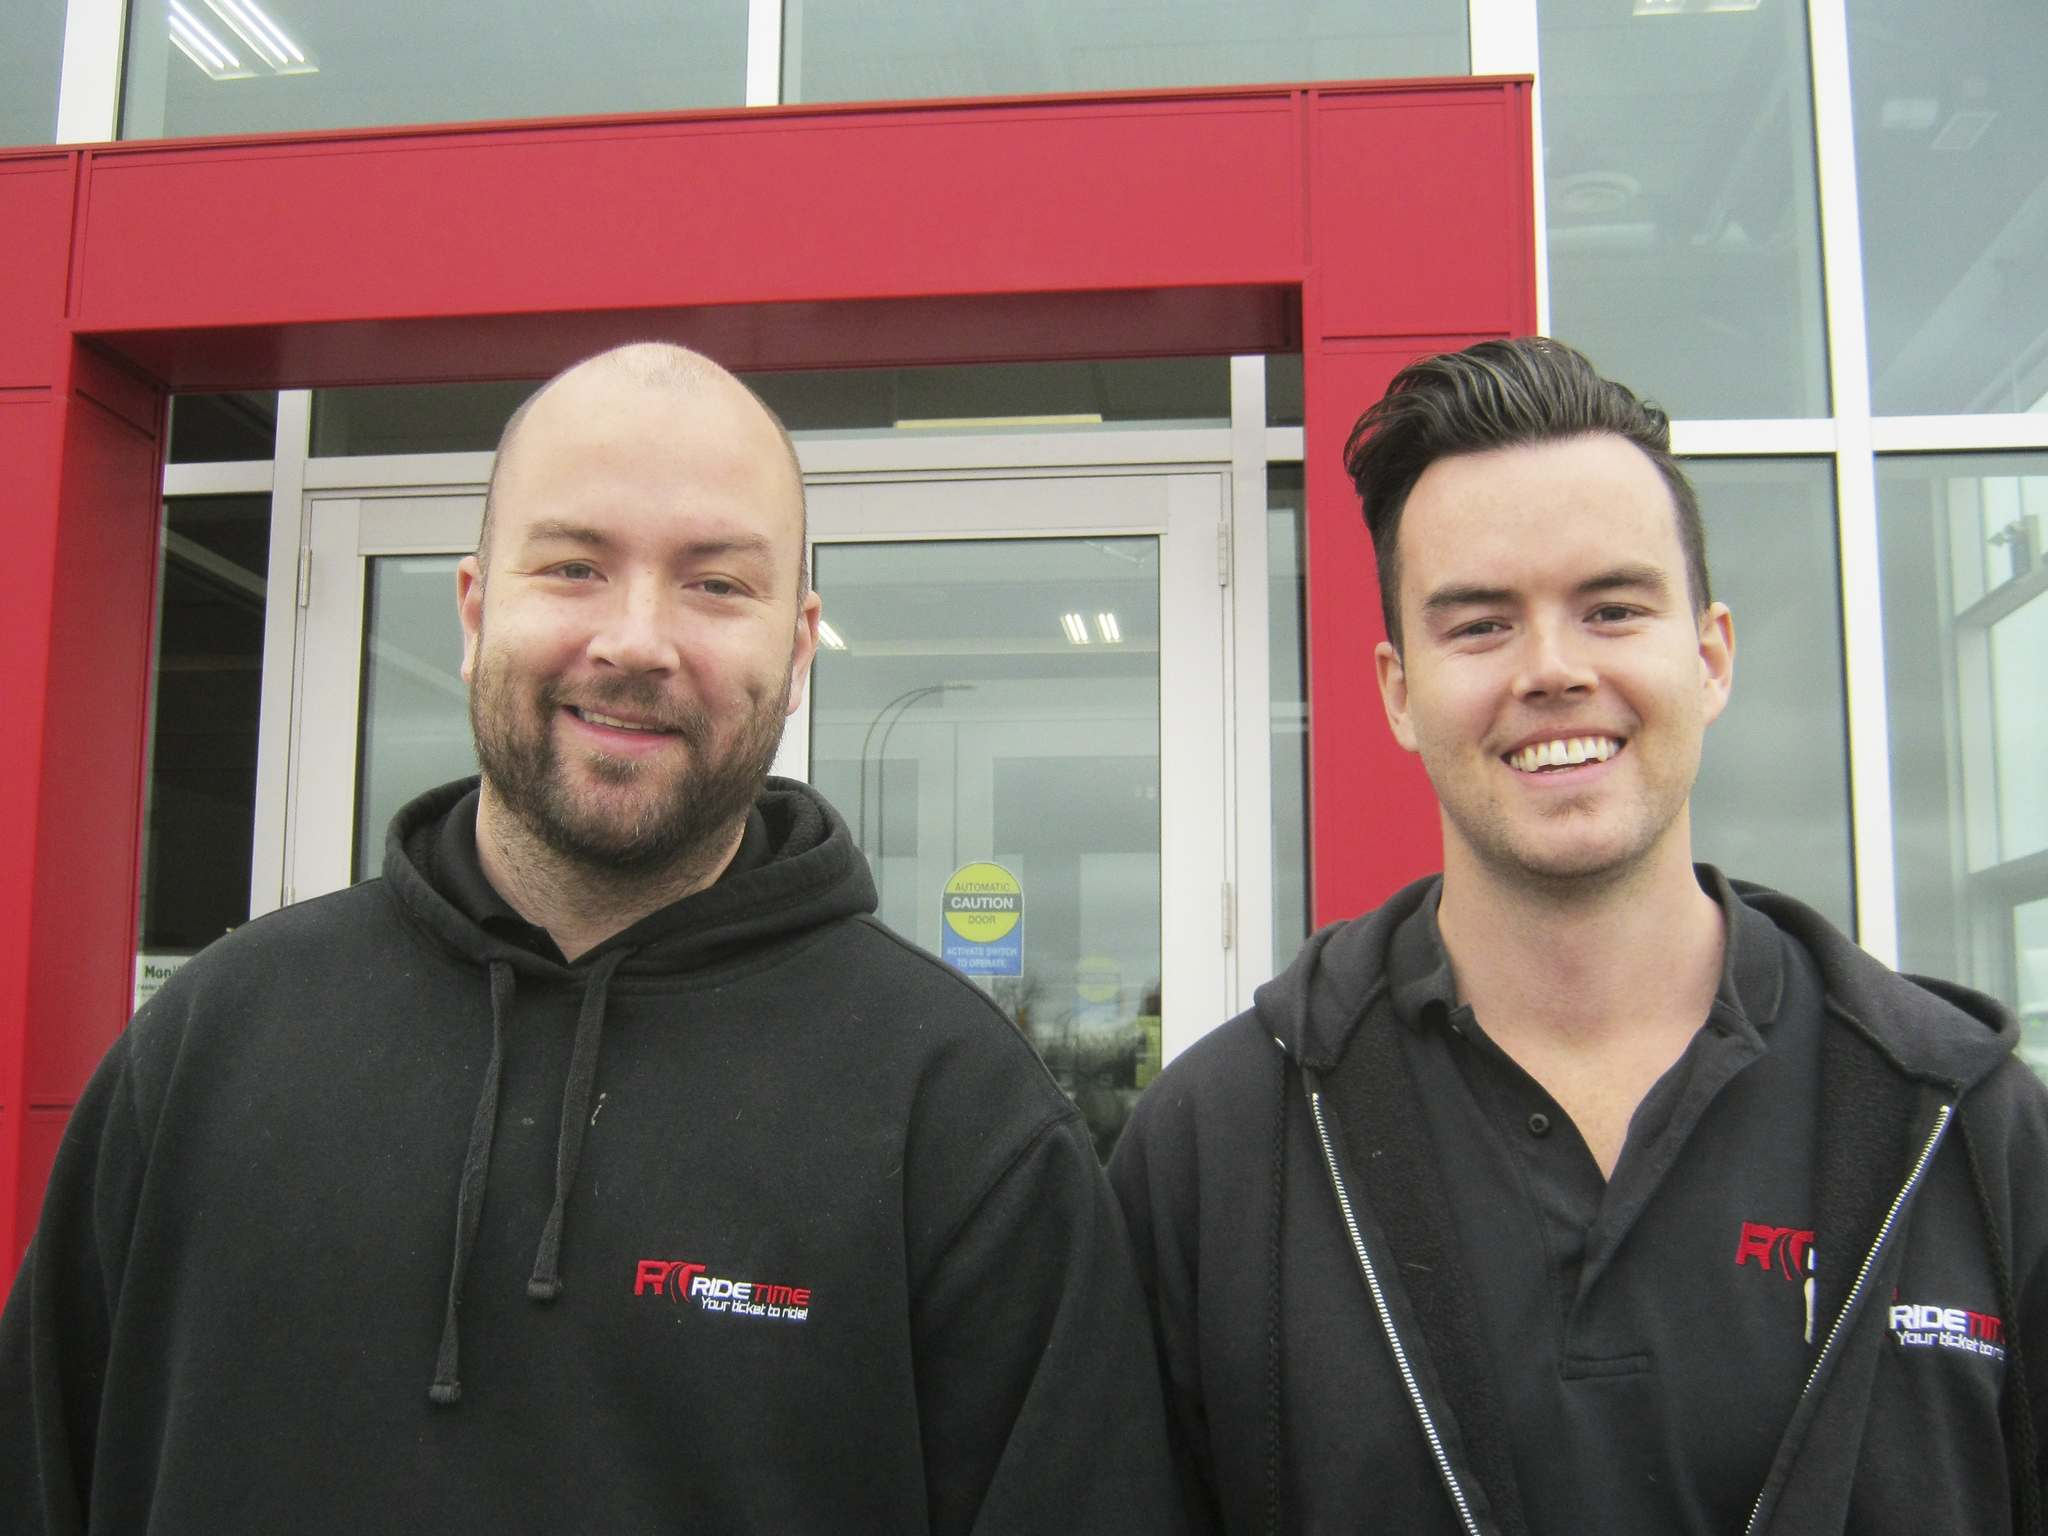 Doug, left, and Andrew MacIver stand outside their new location of their used car enterprise Ride Time on Oak Point Highway. The location, promoted in an advertisement last spring, has opened for business.